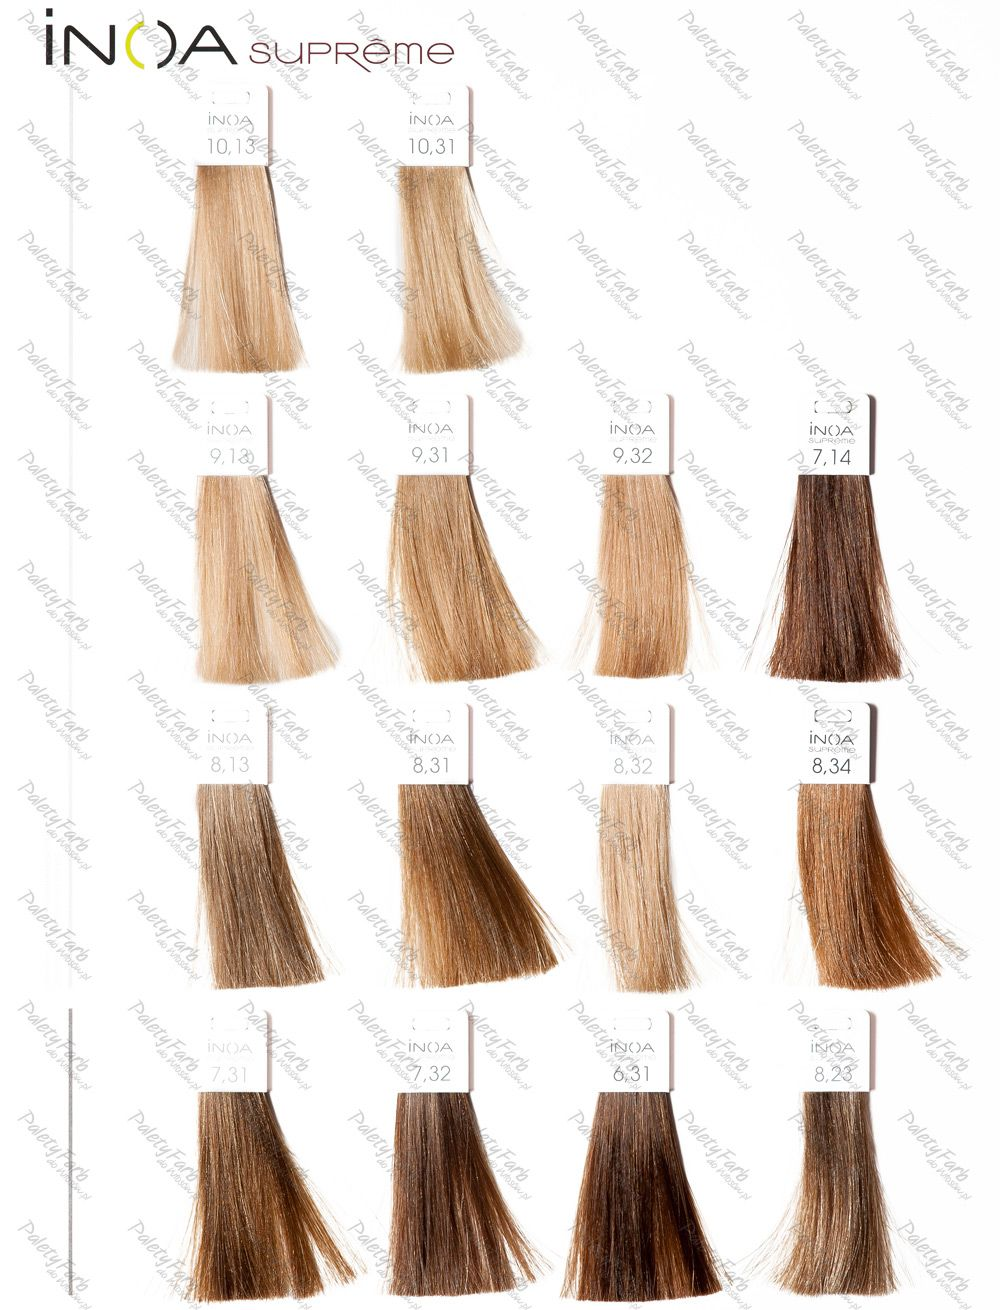 Inoa Supreme 1 Hair In 2018 Pinterest Supreme Hair Beauty And